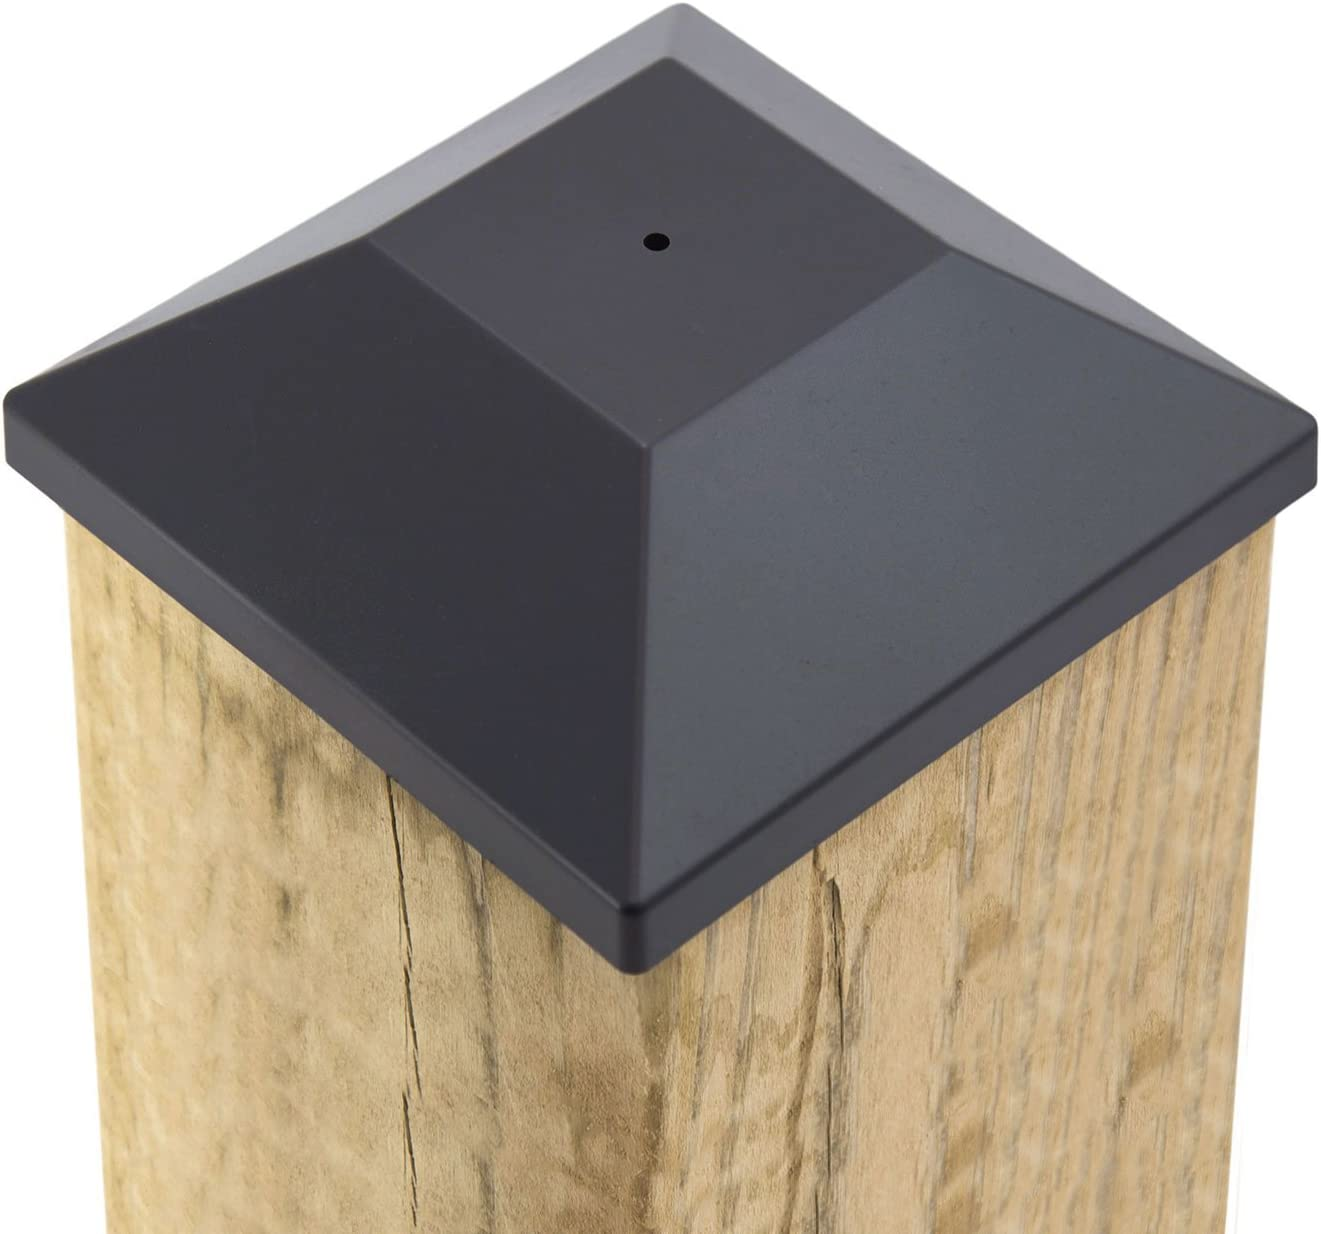 32 Pack New lowest price Wood Fence Indefinitely Post Black 5 T 6X6 Pressure 8